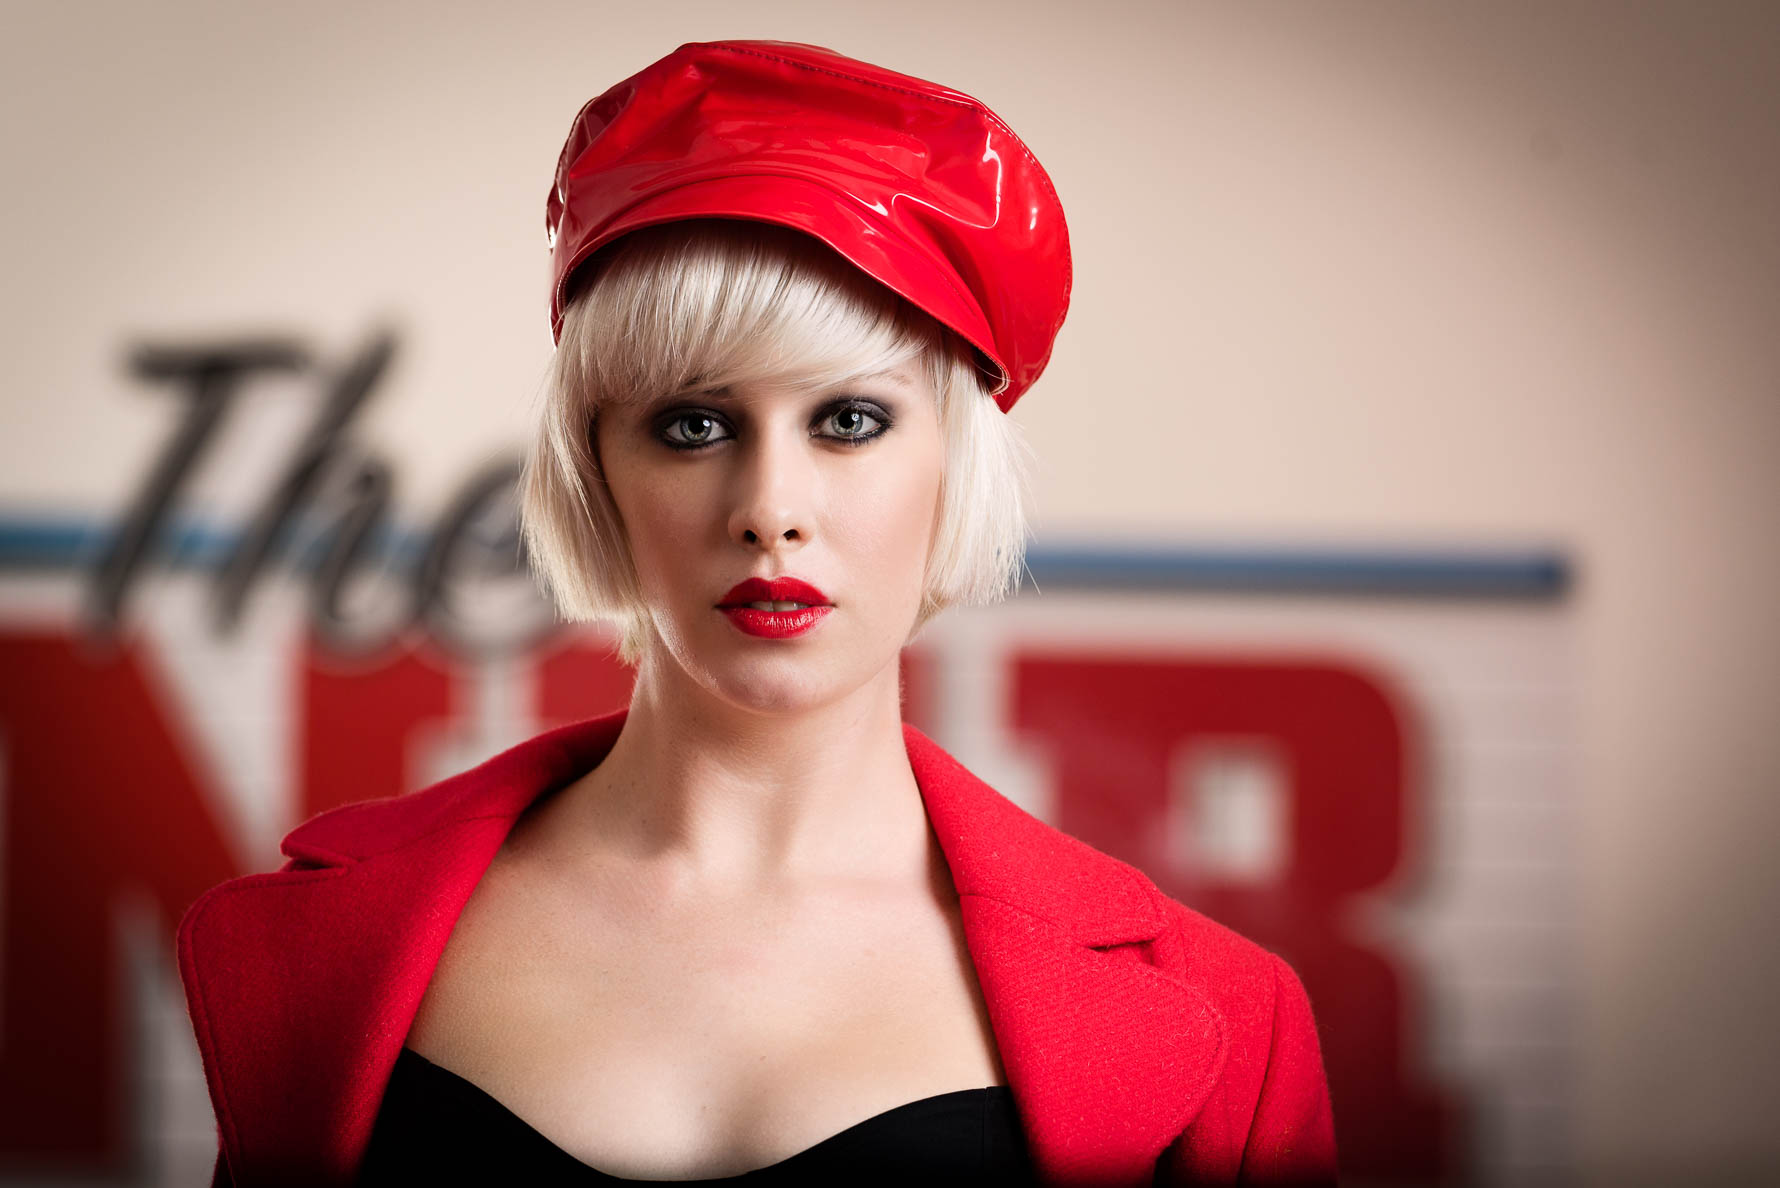 Fashion PR photography Kent - Pretty blonde model in red hat